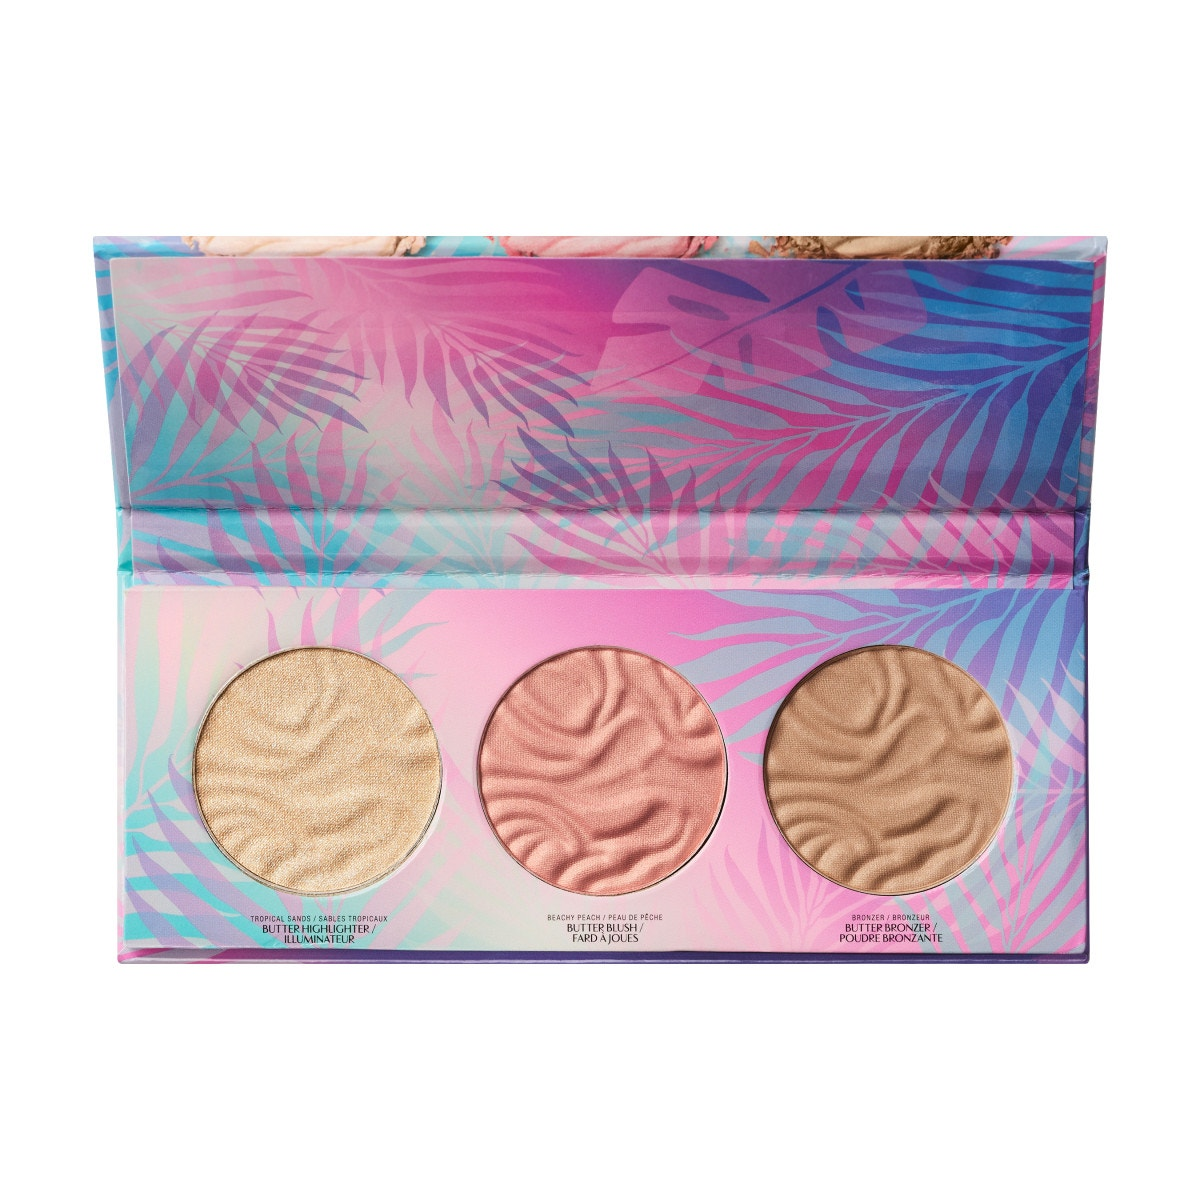 Physicians Formula | The Ultimate Murumuru Butter Collection - Product front facing, palette open, without background